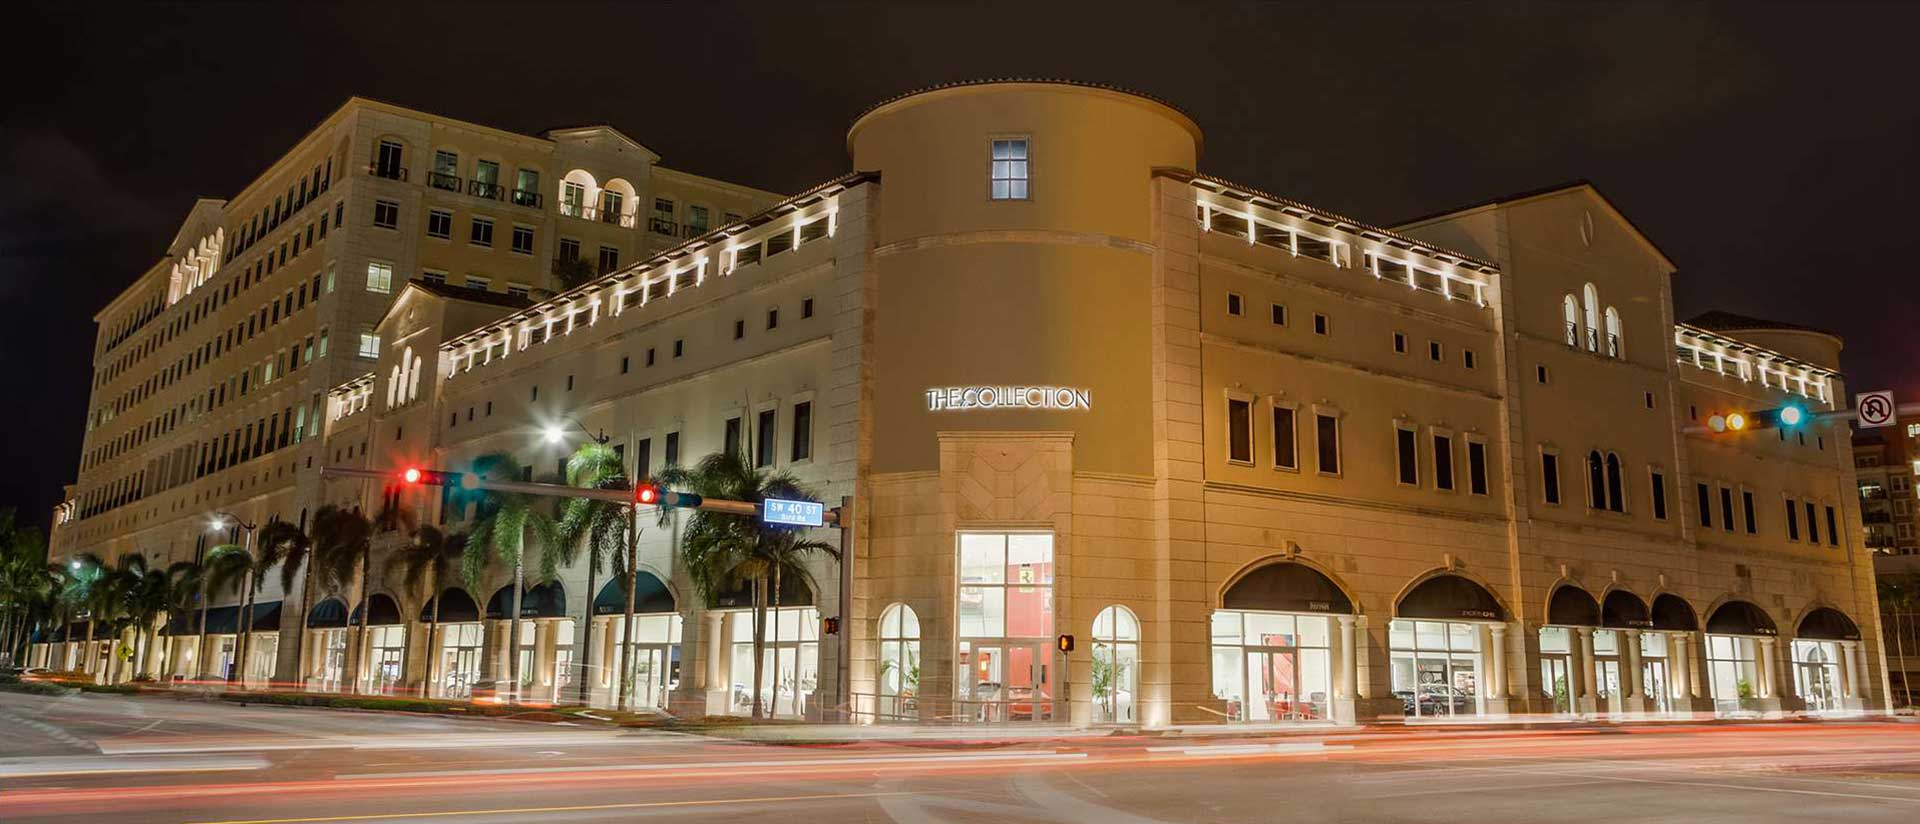 Take A Tour   Luxury Car Dealership in Miami   The Collection